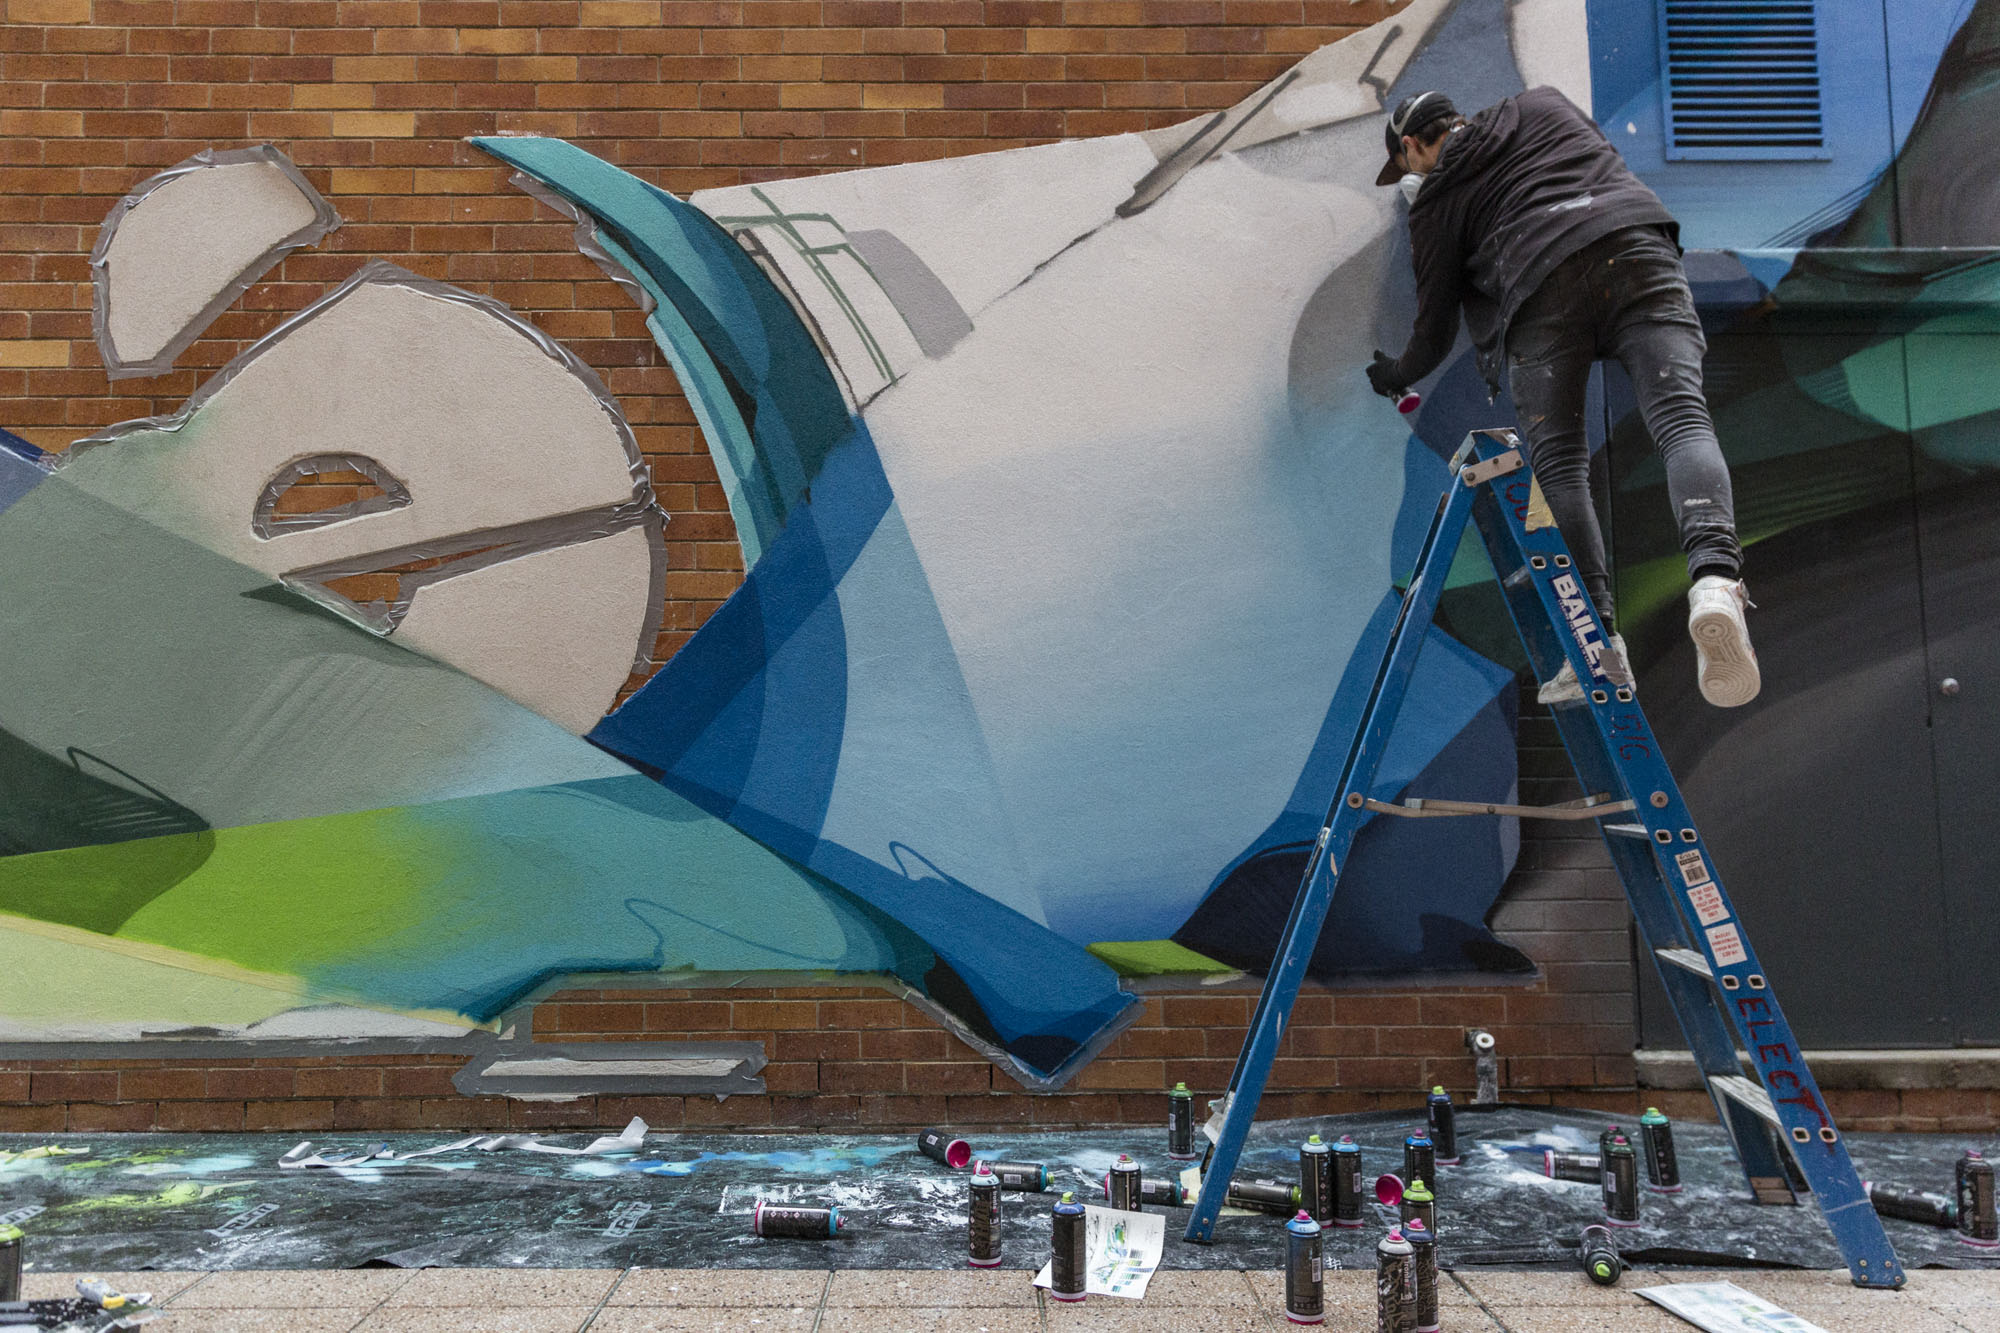 A work by Does - 201905-DOES-QUT-Brisbane_LukeShirlaw_IMG_9415